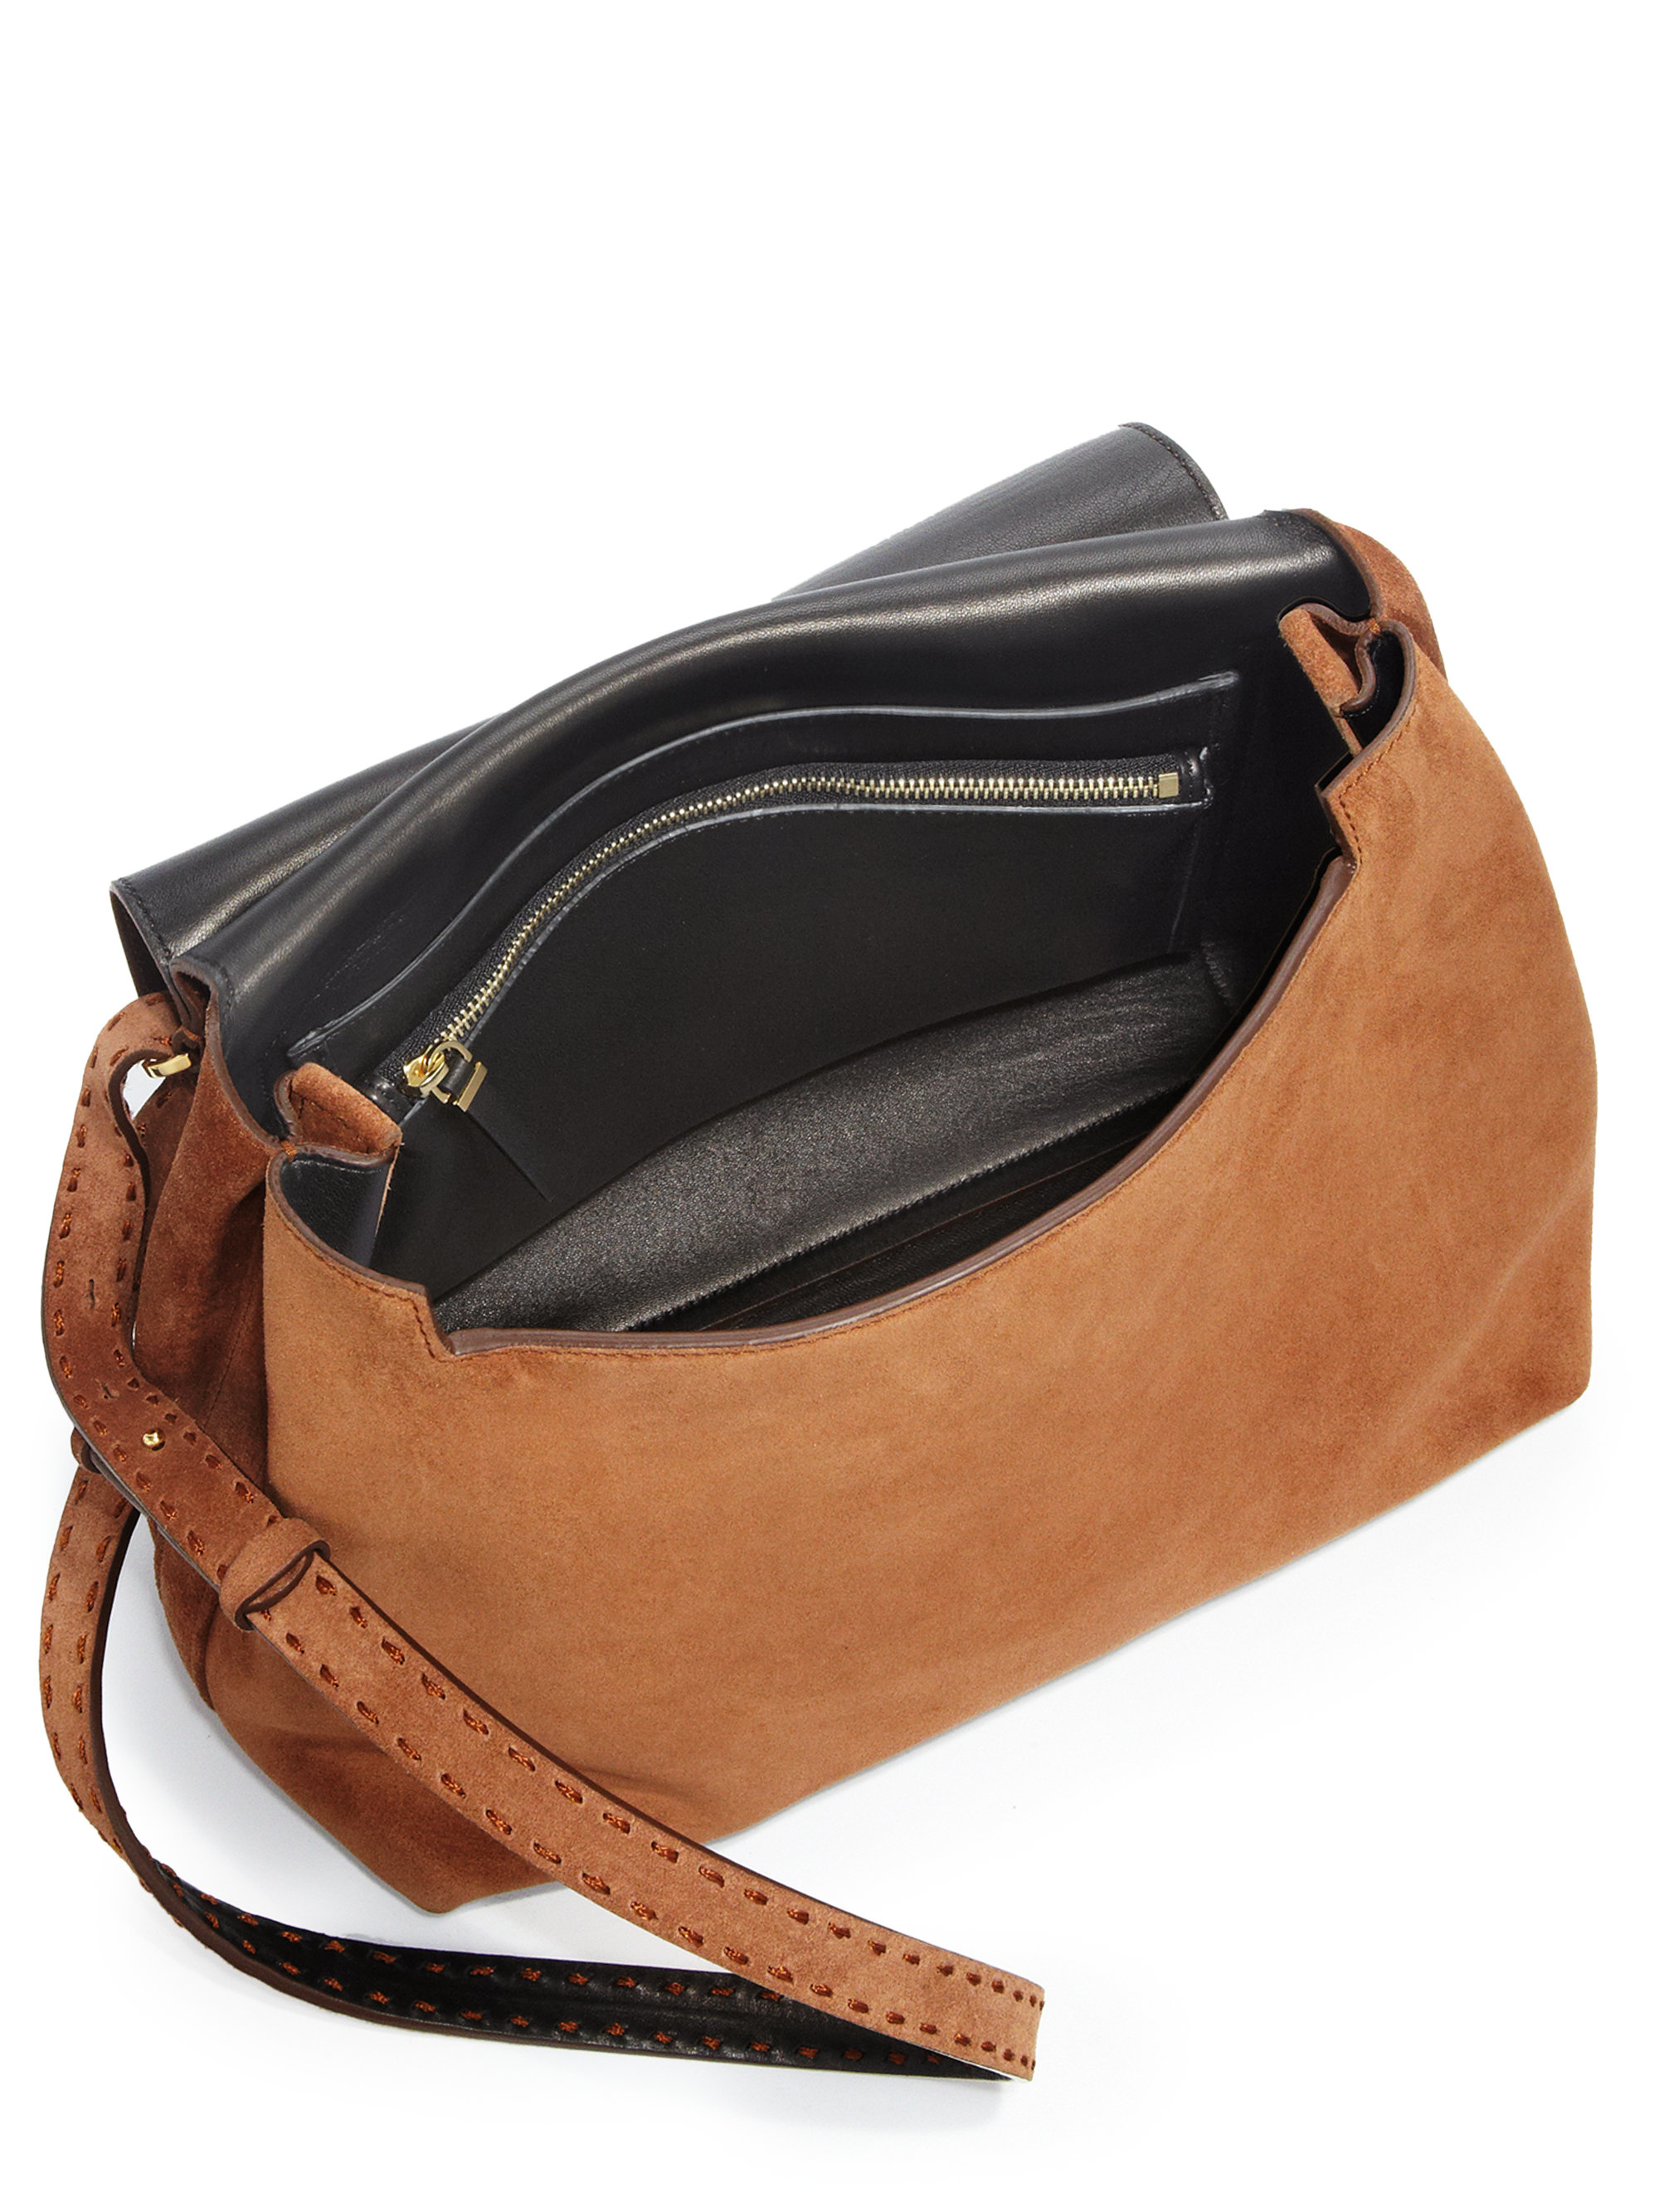 9a96a8c7c8 Lyst - The Row Sideby Suede Crossbody Bag in Brown